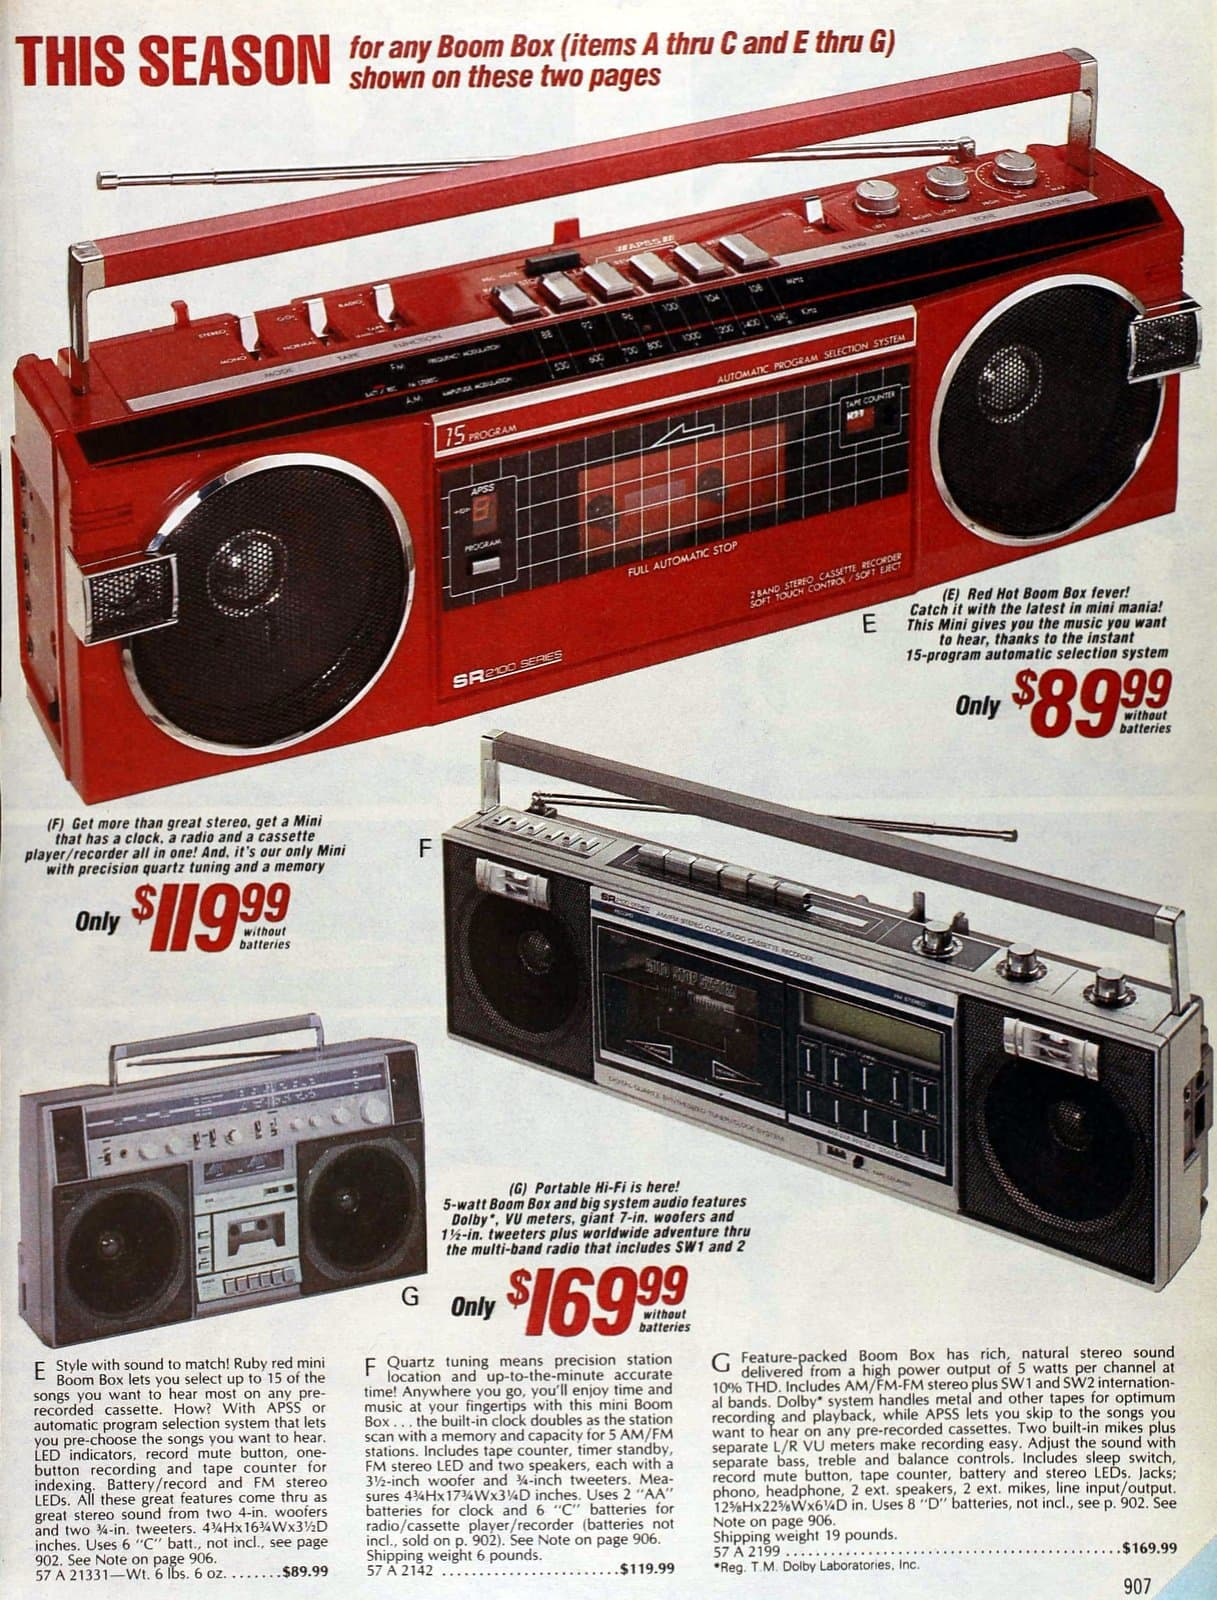 Boom boxes: Portable radios with cassette players (1985)